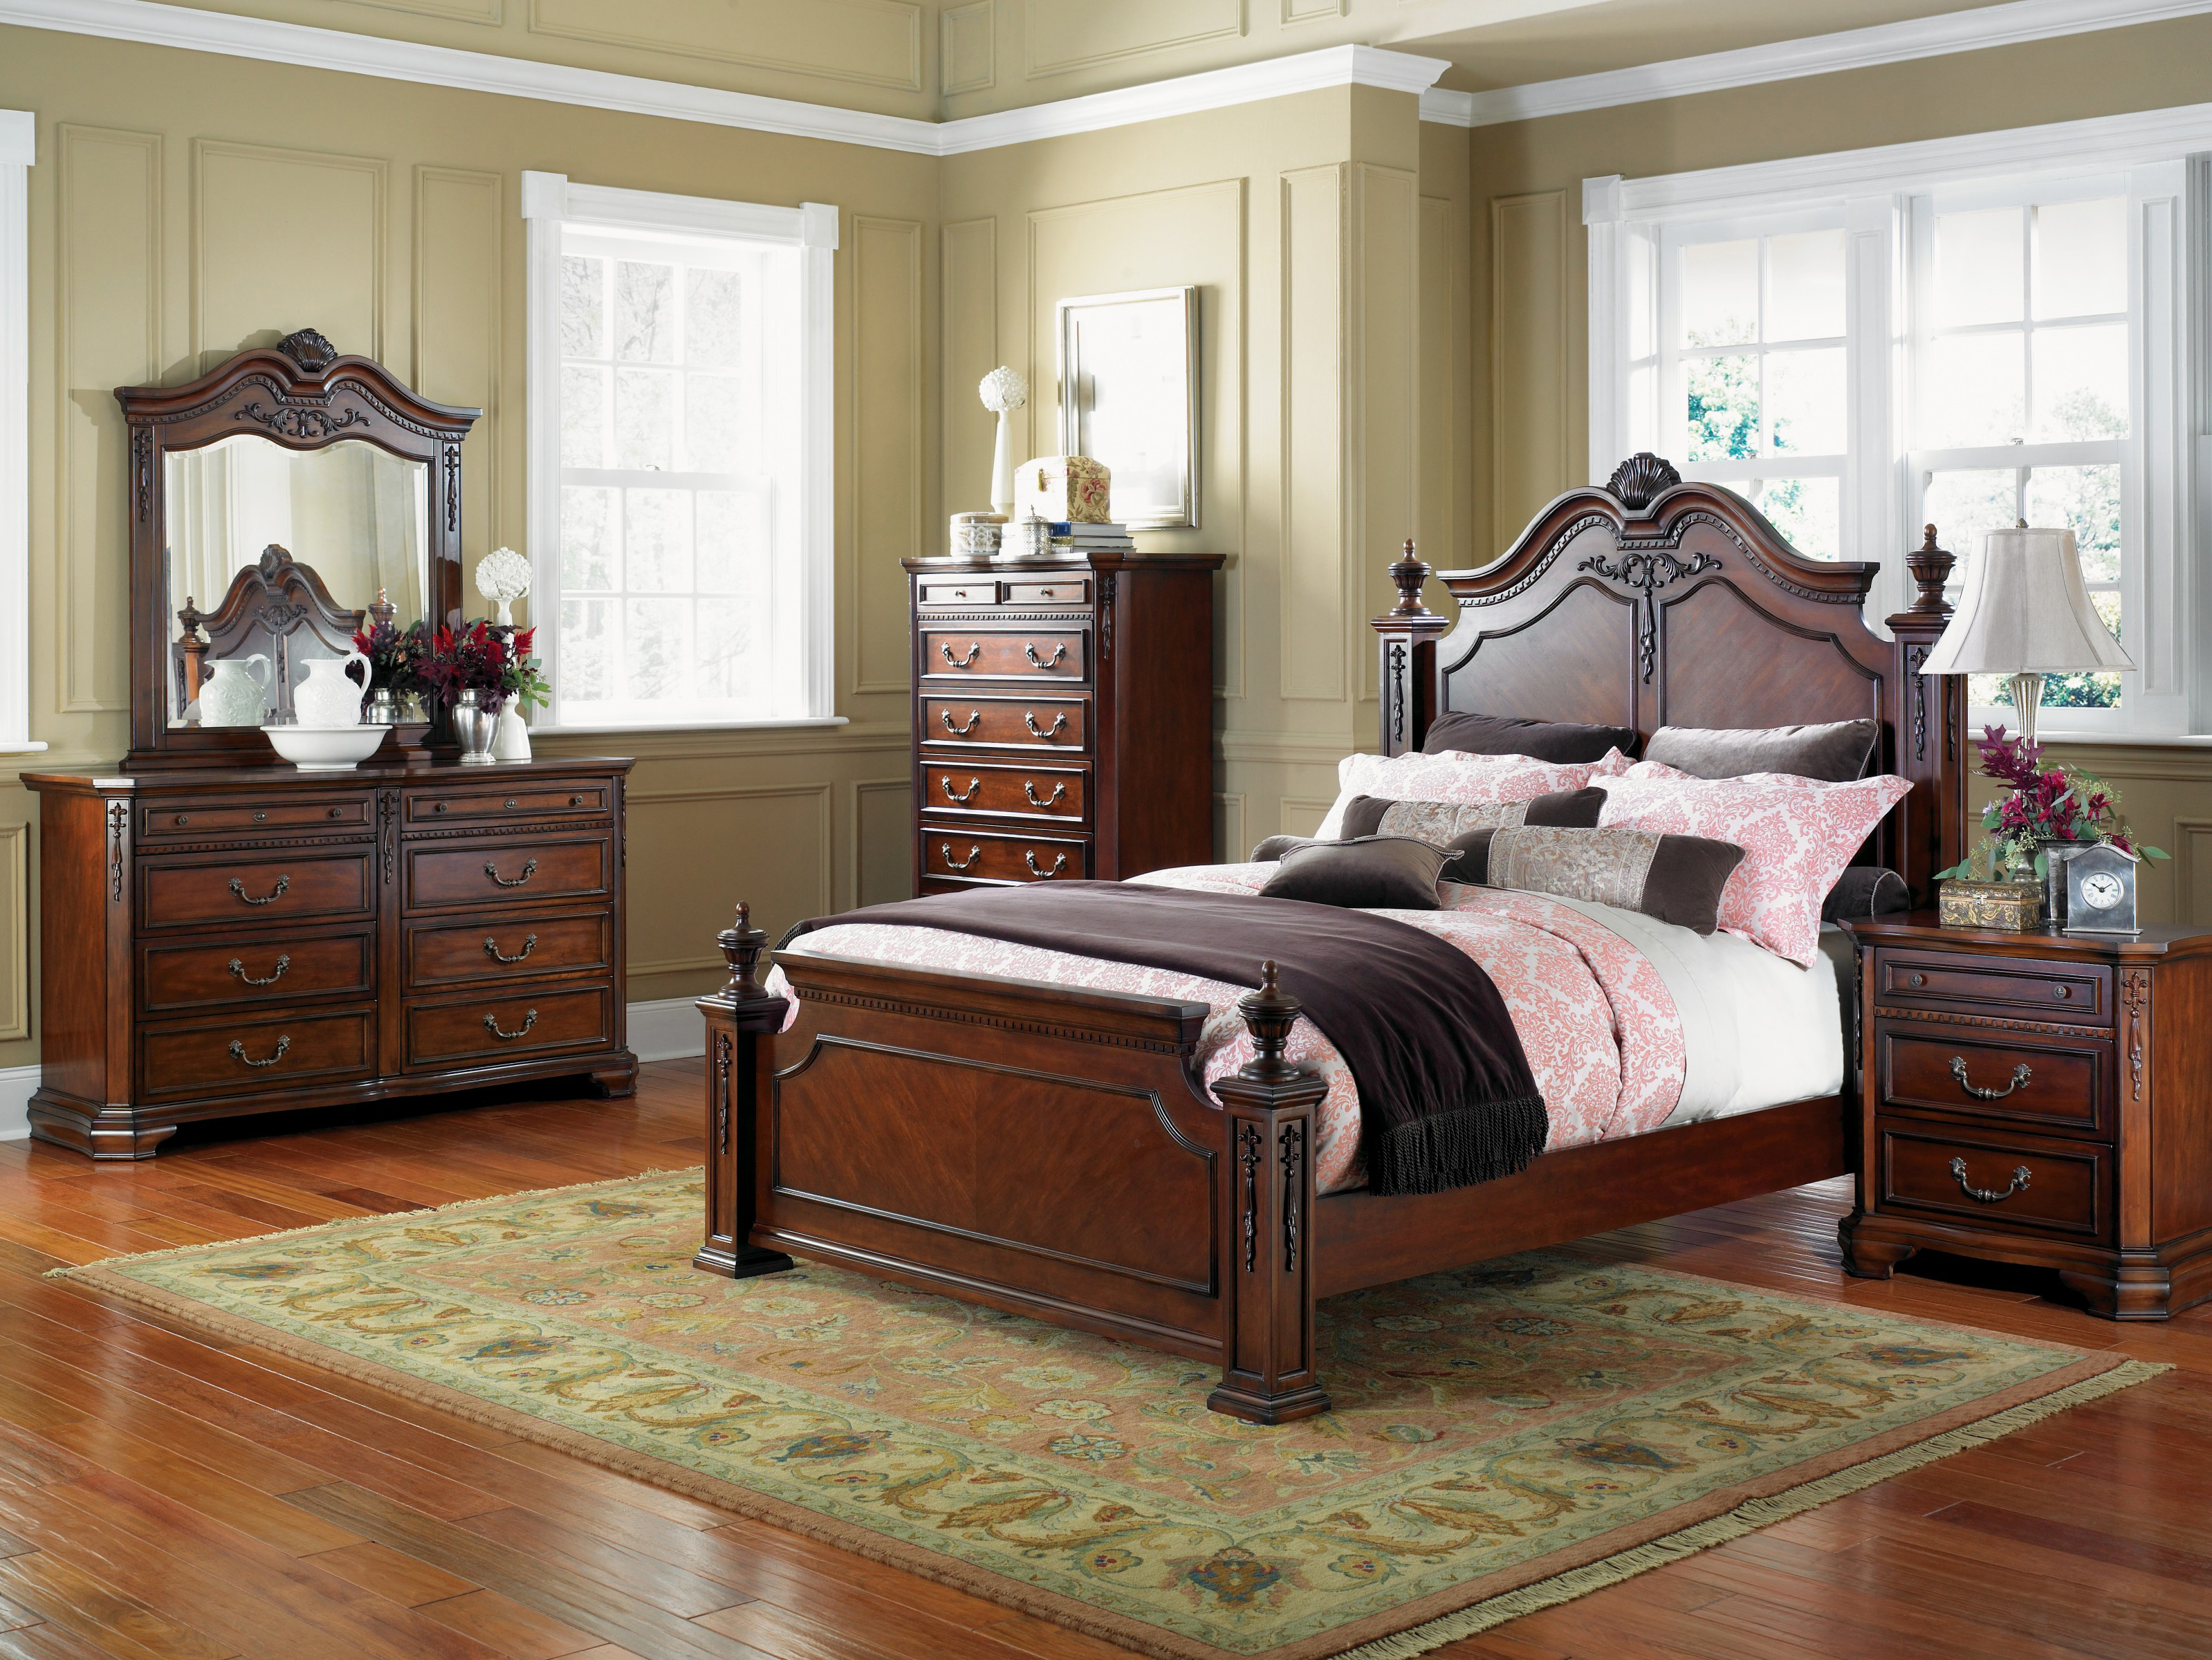 Bedroom Furniture Pink